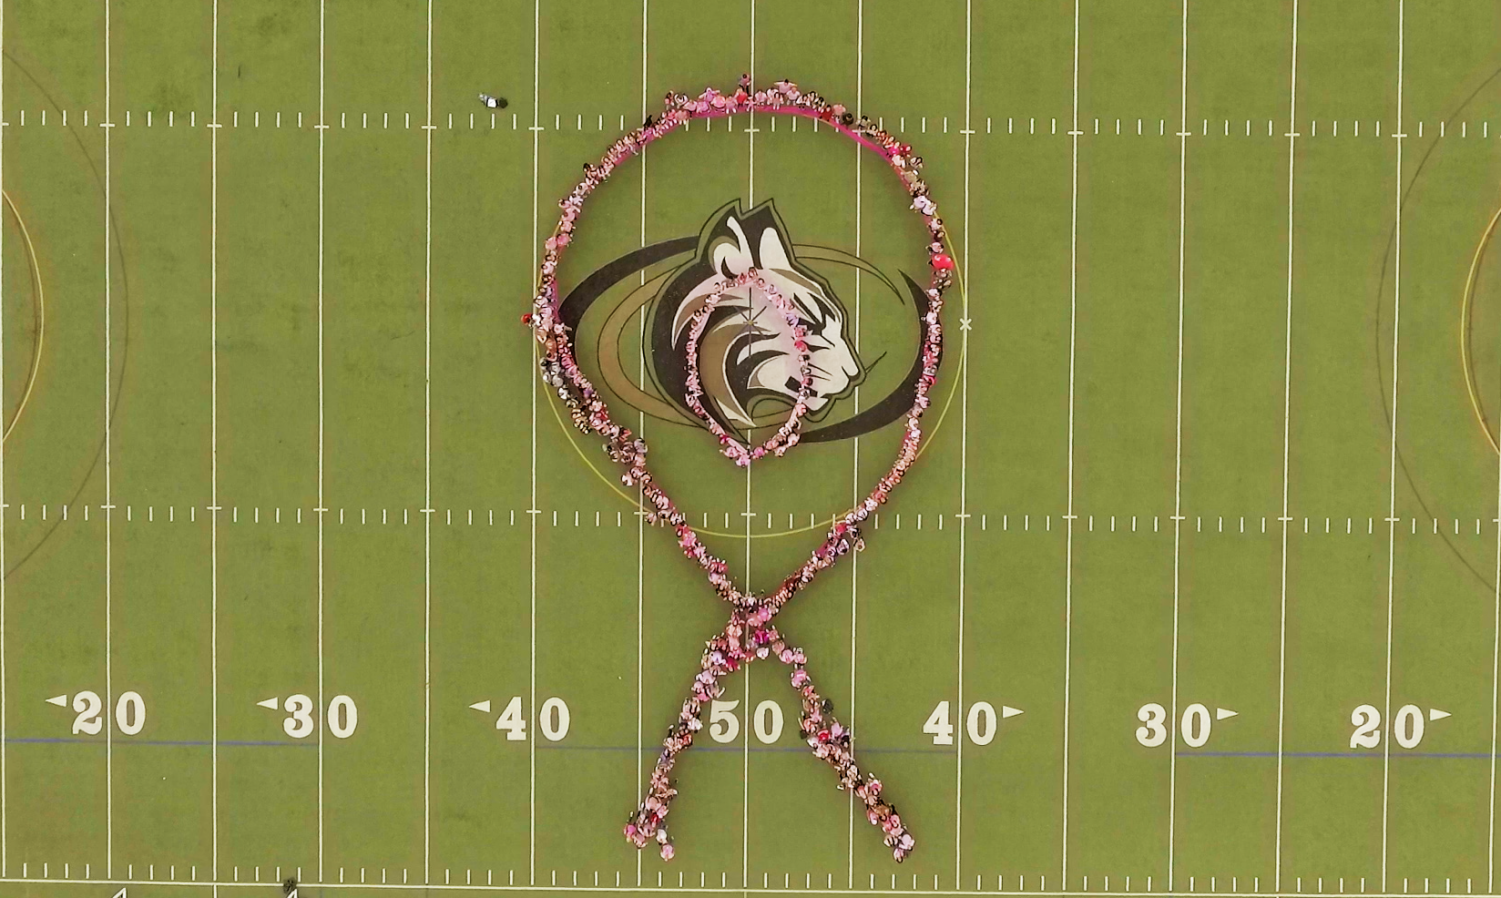 Everyone+celebrated+Mrs.Olivia+by+making+a+pink+ribbon+on+the+athletic+field.+On+Thursday%2C+she+successfully+underwent+surgery+for+breast+cancer.